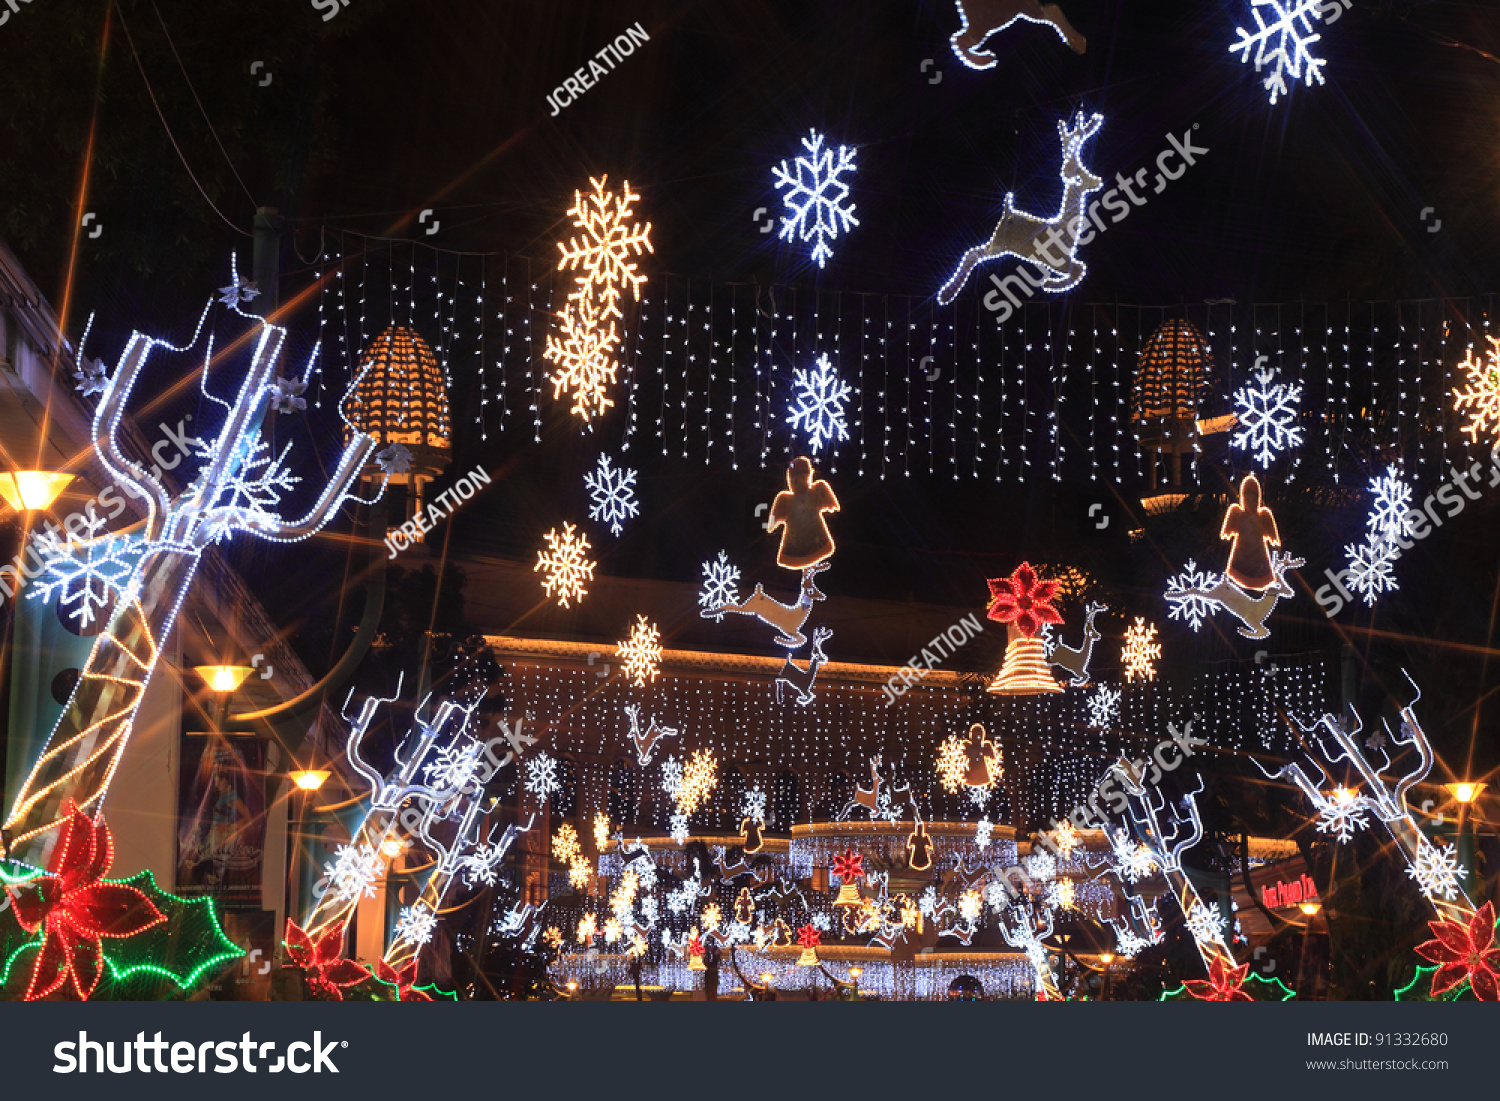 SELANGOR, MALAYSIA - DECEMBER 11: The beautiful Christmas decorations &  showlights displays along driveway